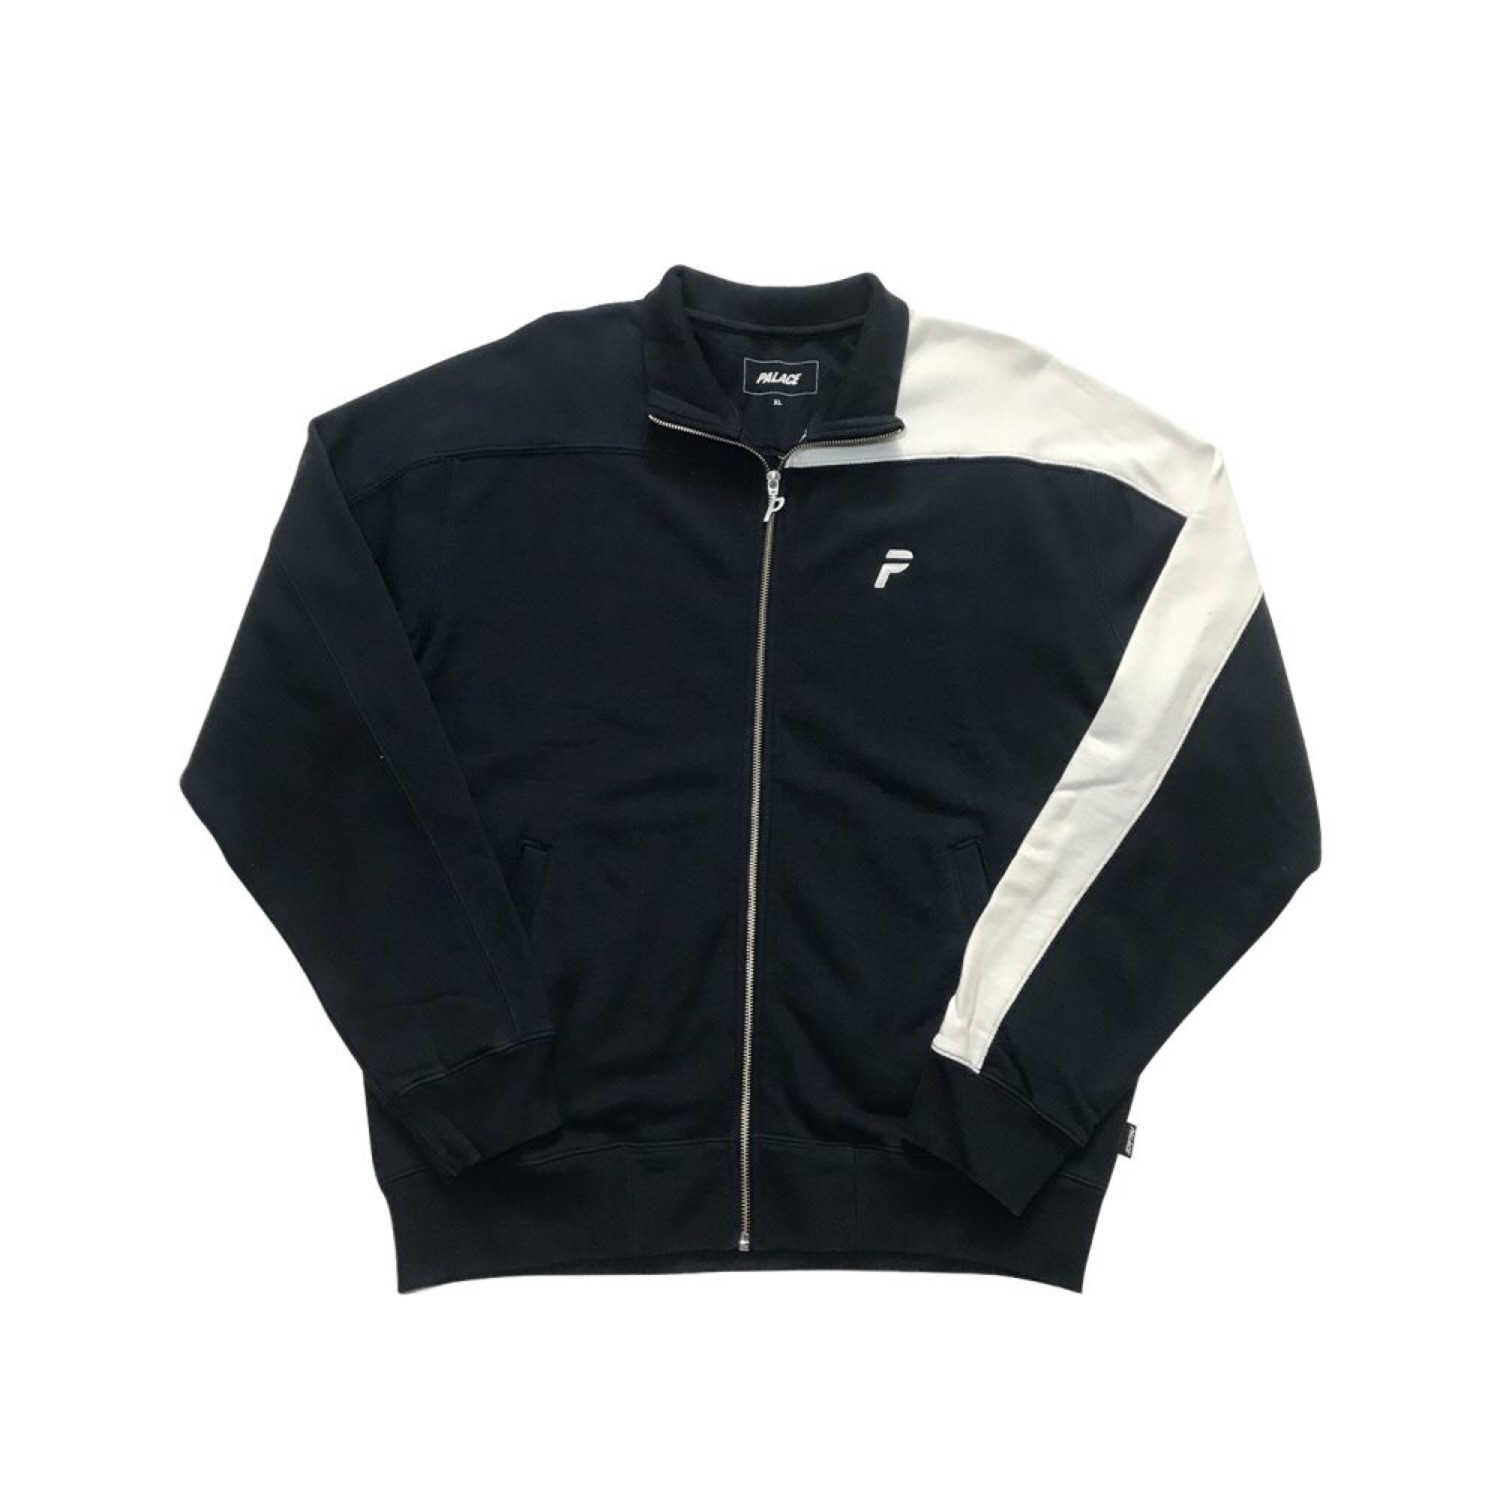 9c6aef545996 Palace Sport Selecta Track Top Size Xl